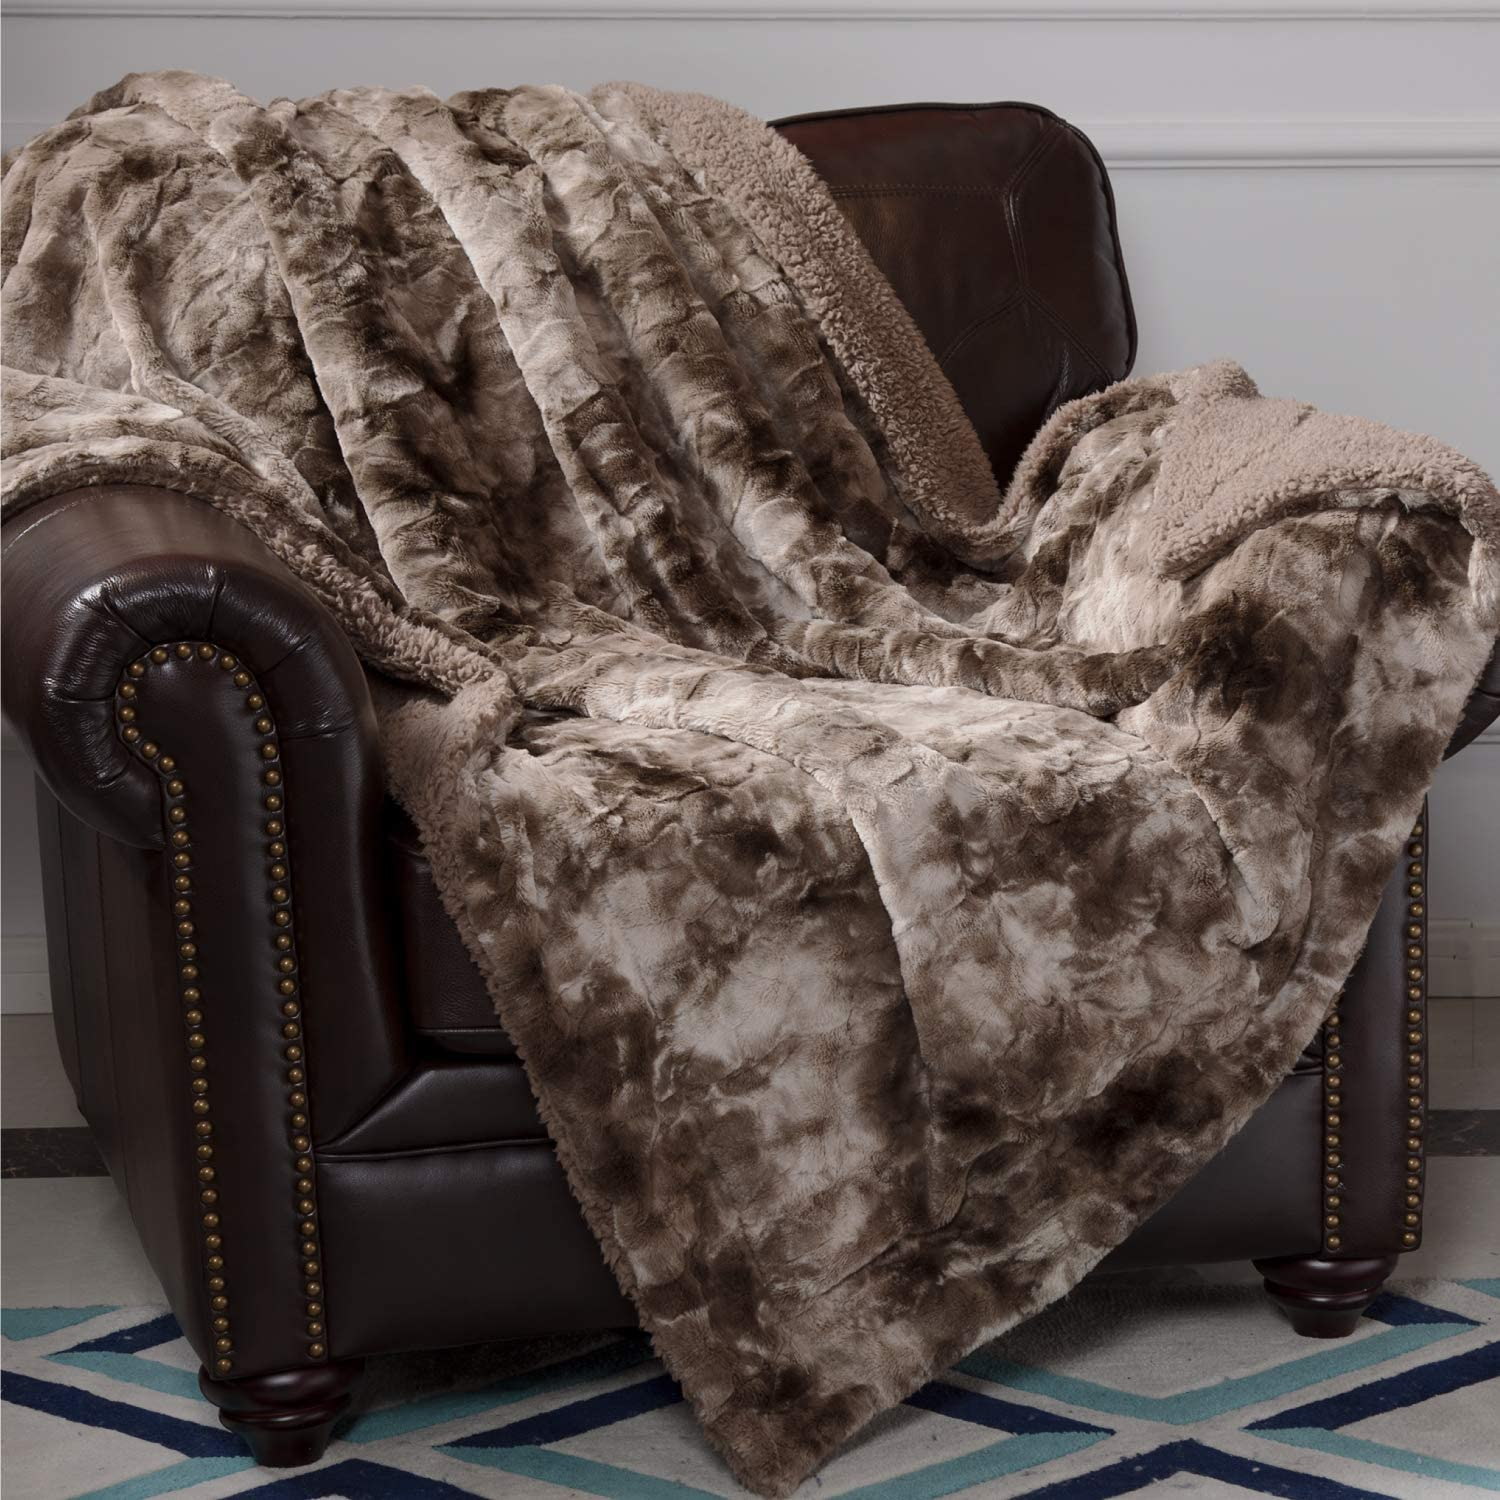 Bedsure Faux Fur Reversible Tie-dye Sherpa Throw Blanket for Sofa, Couch and Bed - Super Soft Fuzzy Fleece Blanket for Outdoor, Indoor, Camping, Gifts (60x80 inches, Chocolate)